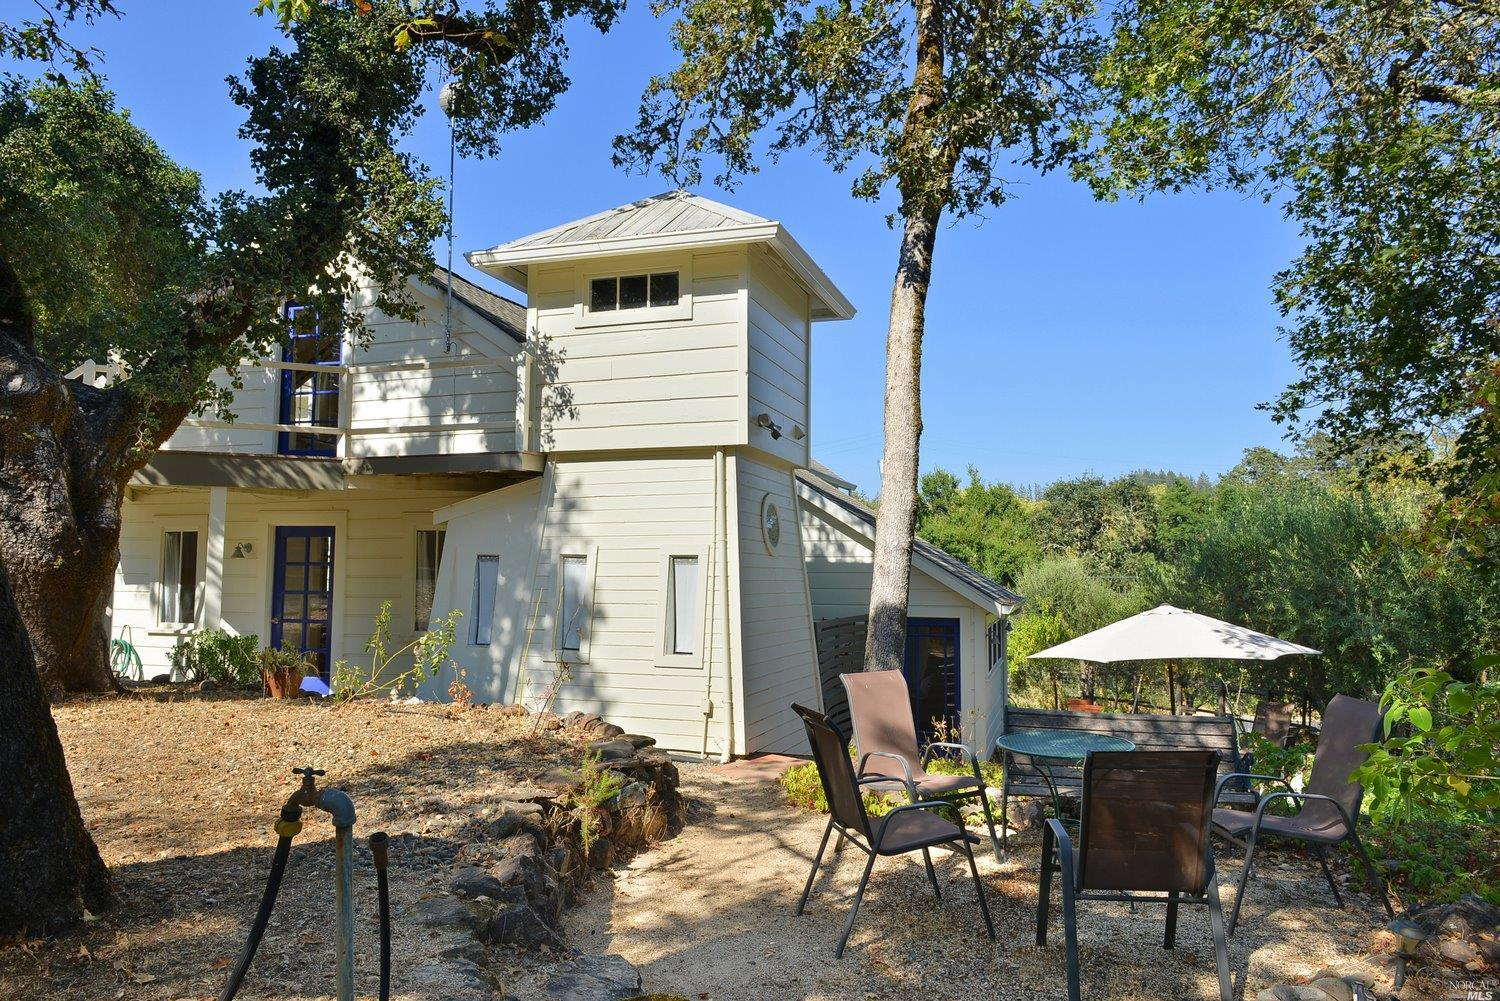 2063 2065 W Dry Creek road Healdsburg, CA 95448 - MLS #: 21622283